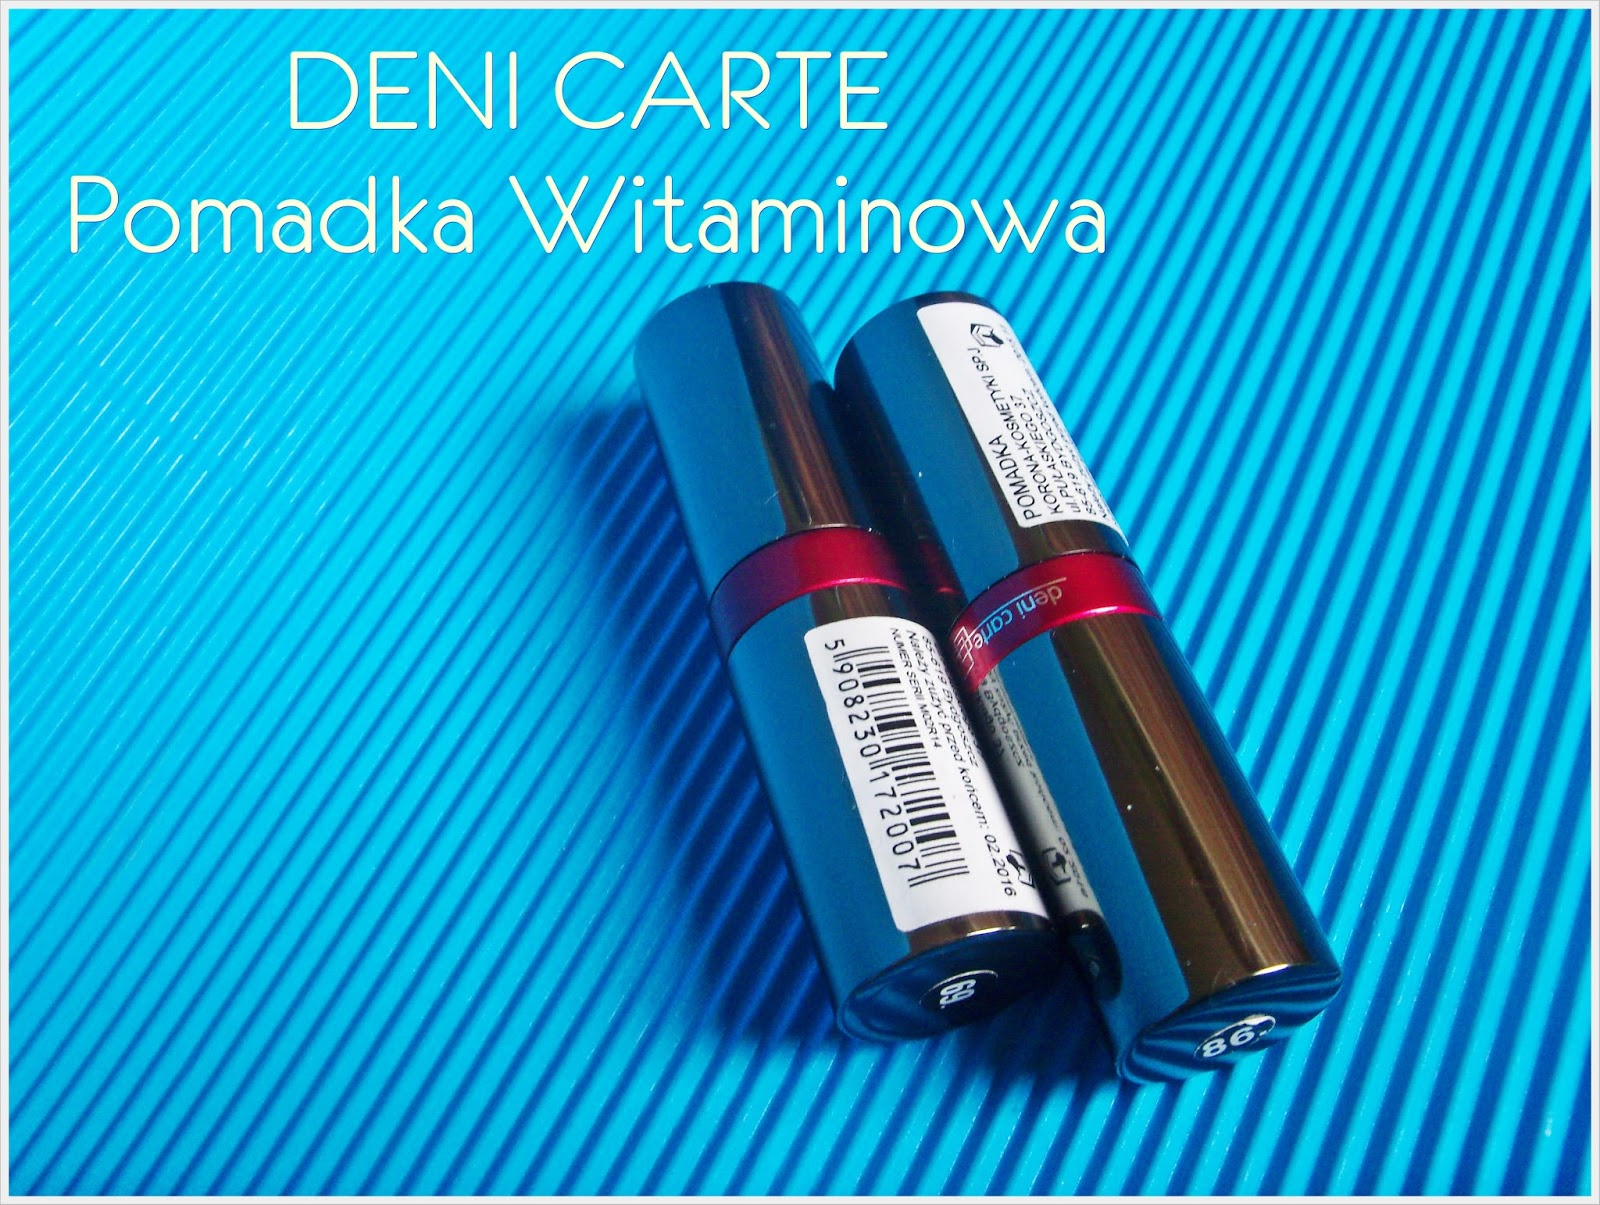 POMADKA WITAMINOWA - DENI CARTE ( 69, 86 )